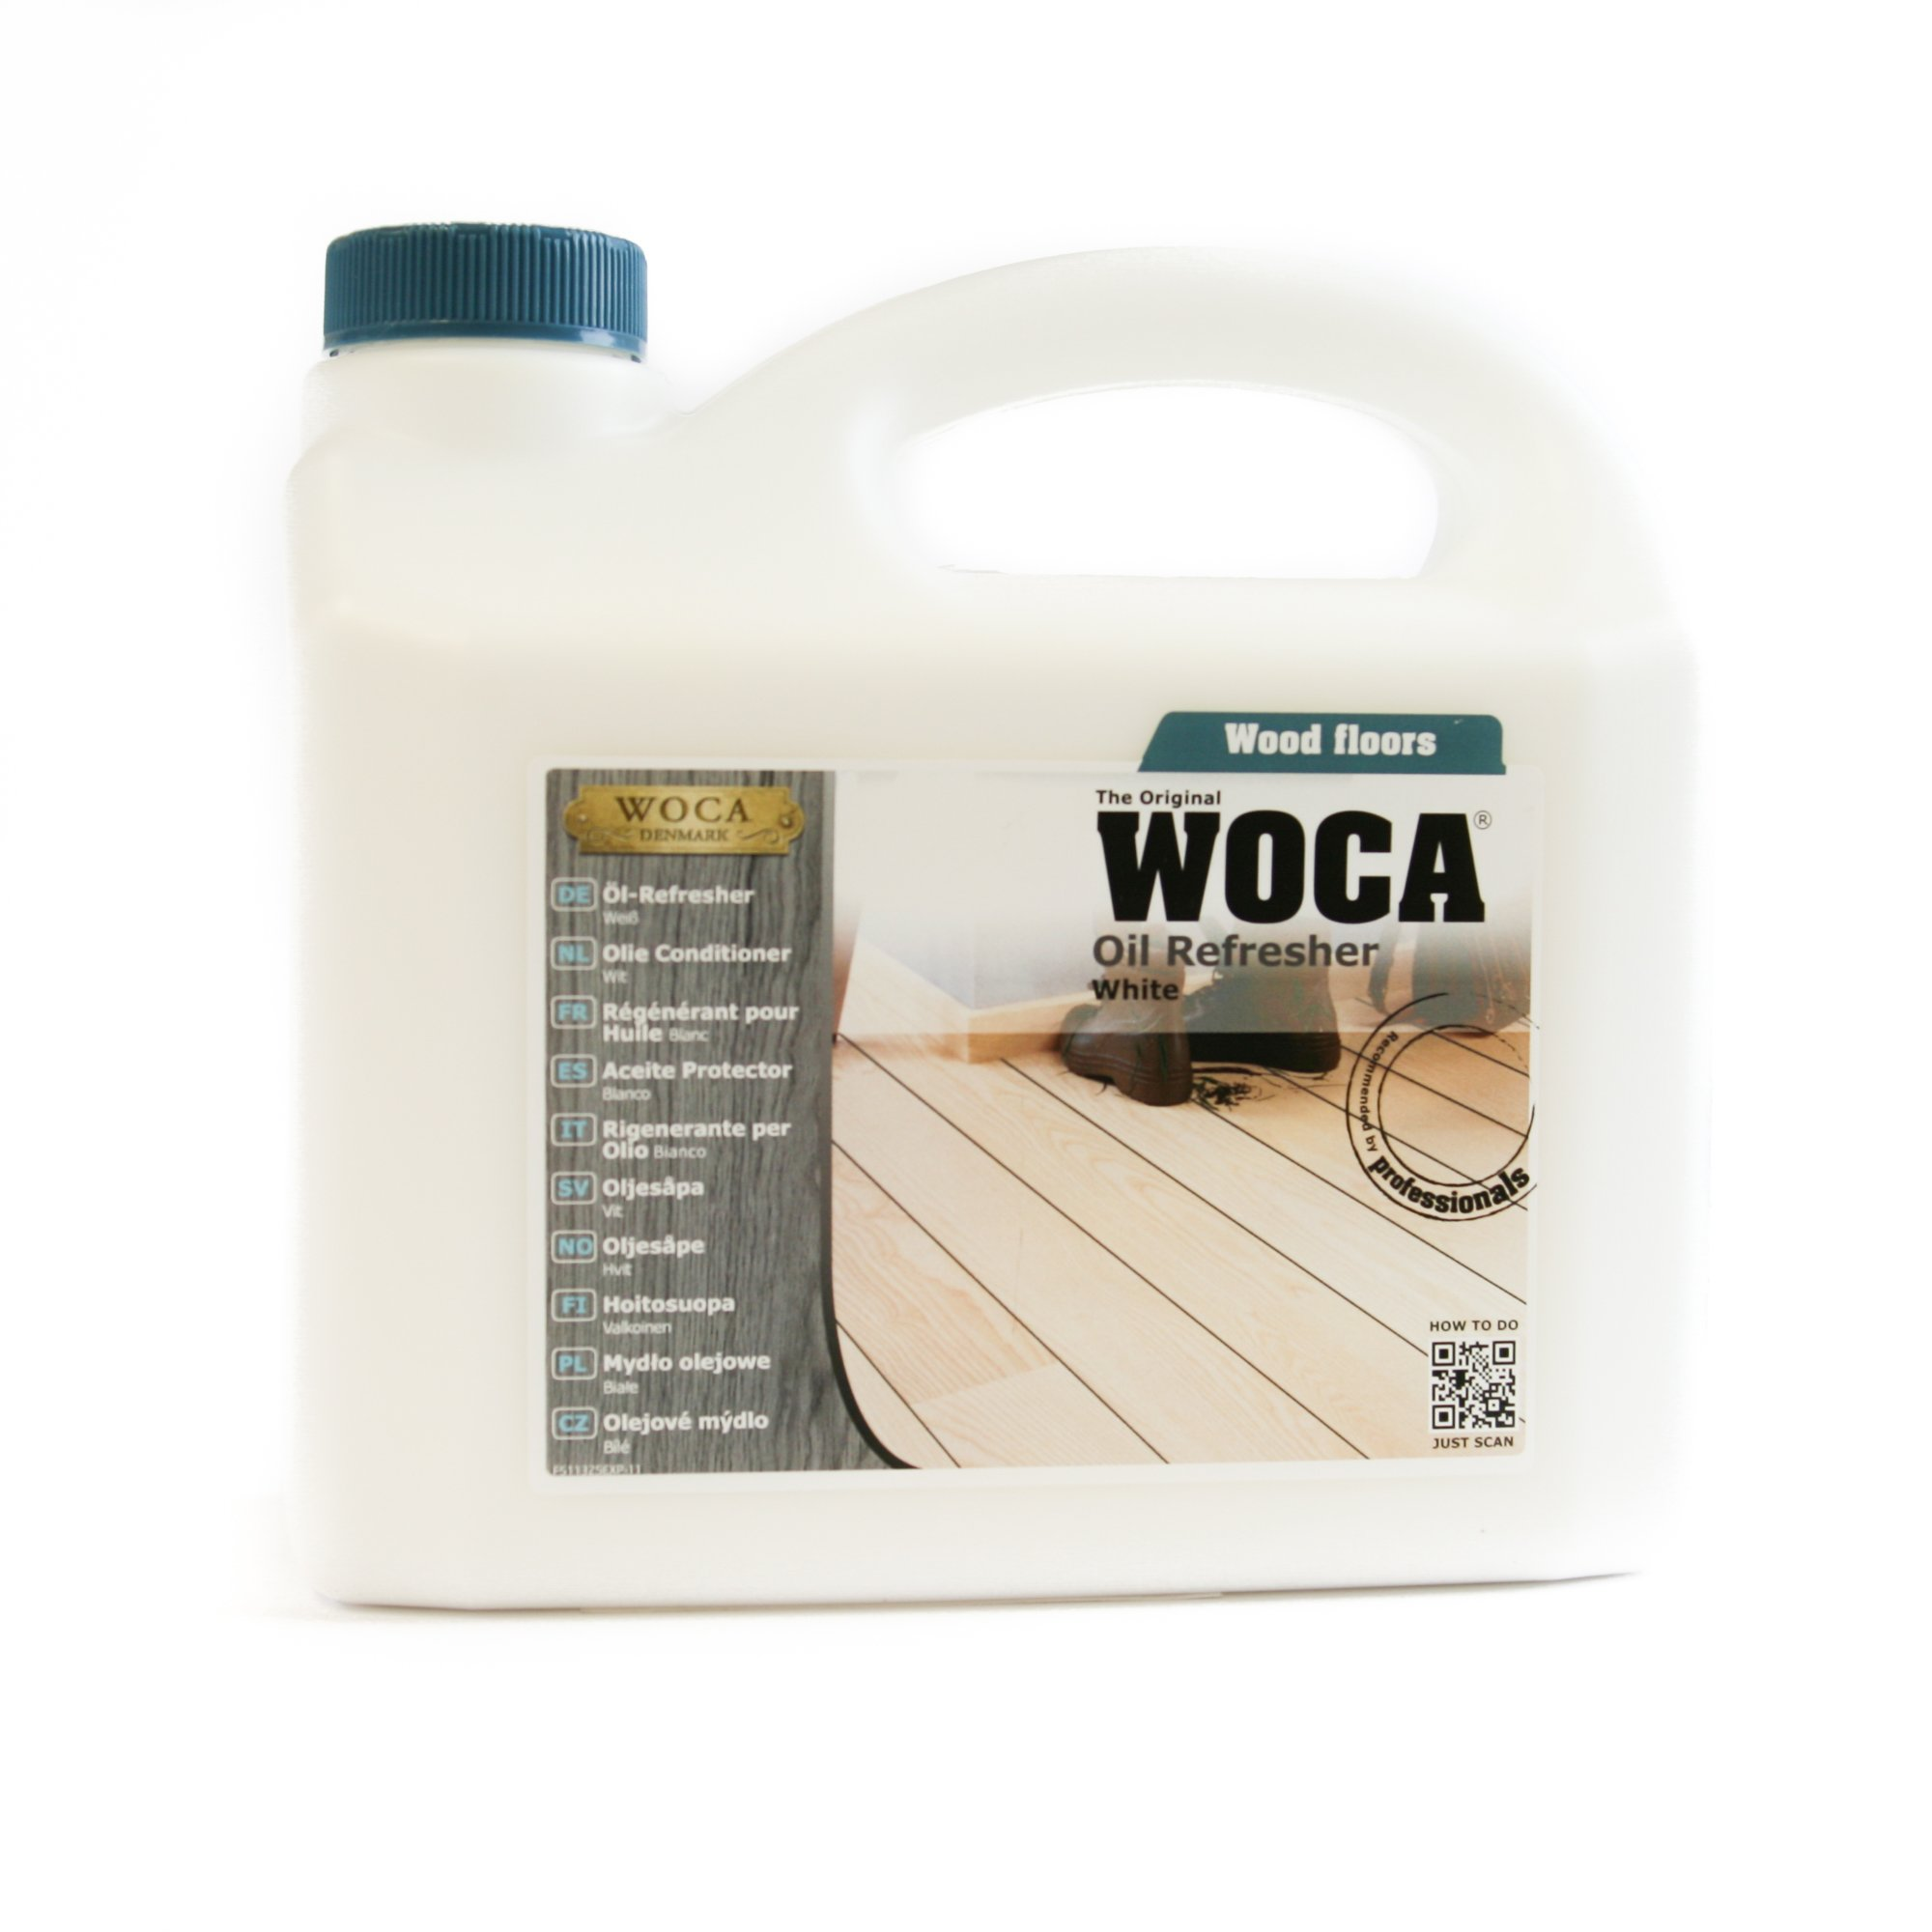 Woca Denmark- Oil Refresher 2.5 Liters (White) by WOCA